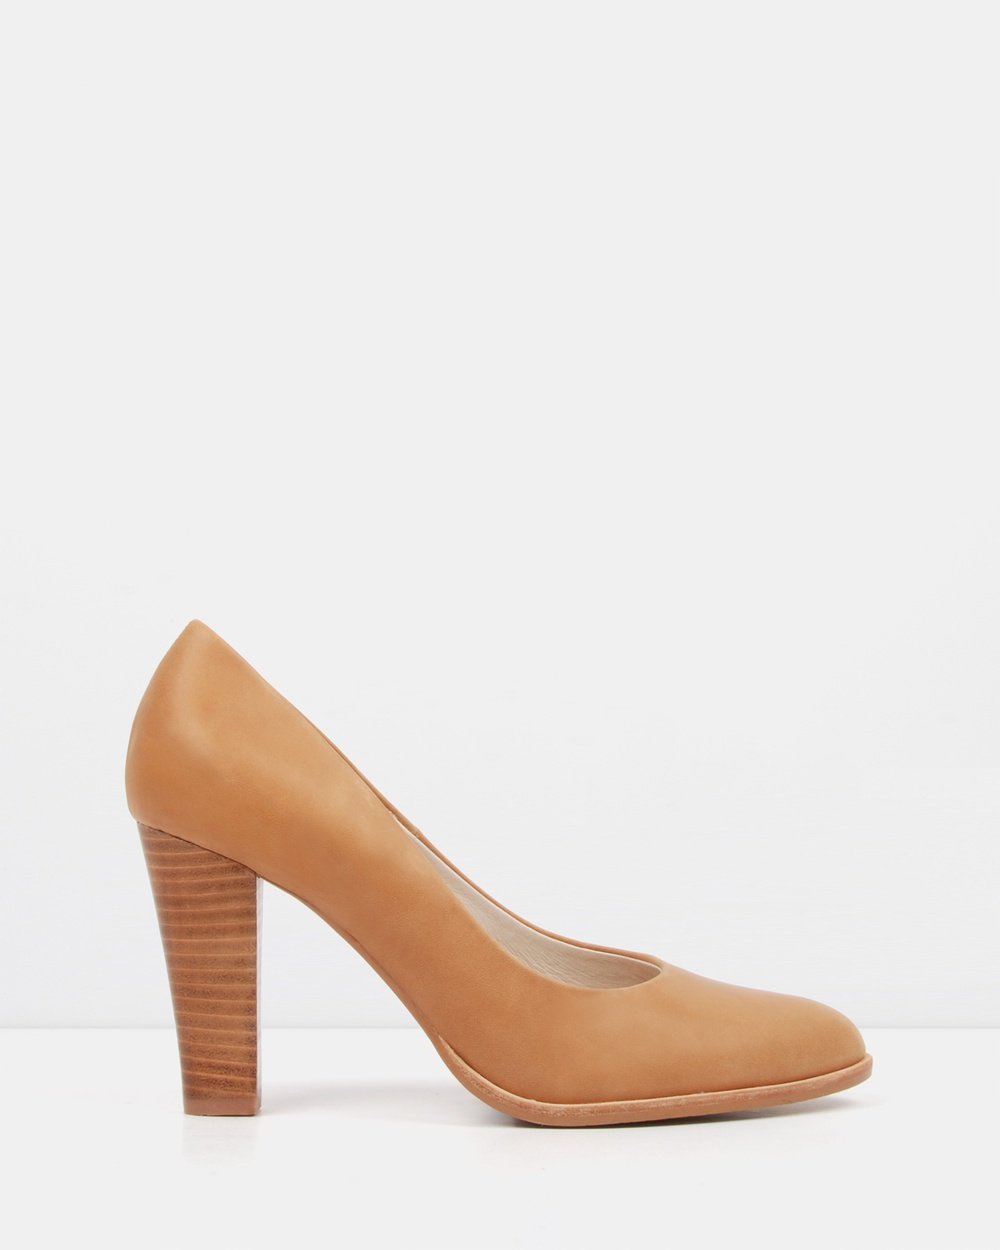 Jo Mercer Uptown Heeled Pumps All Pumps Chocolate Uptown Heeled Pumps